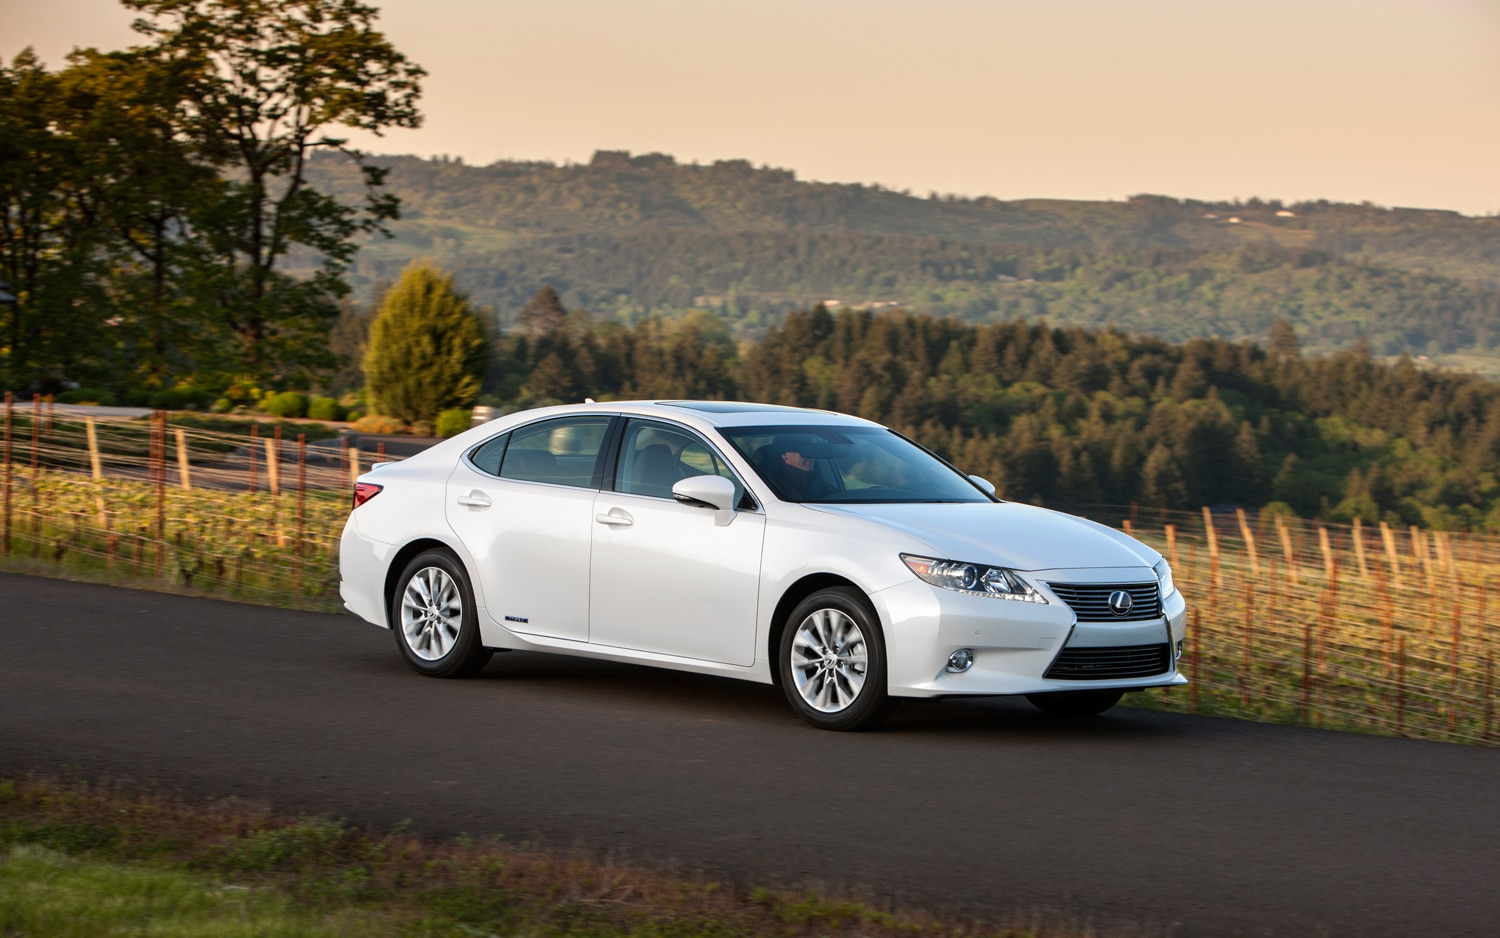 2013 Lexus ES 300h White Front Right Side View 21